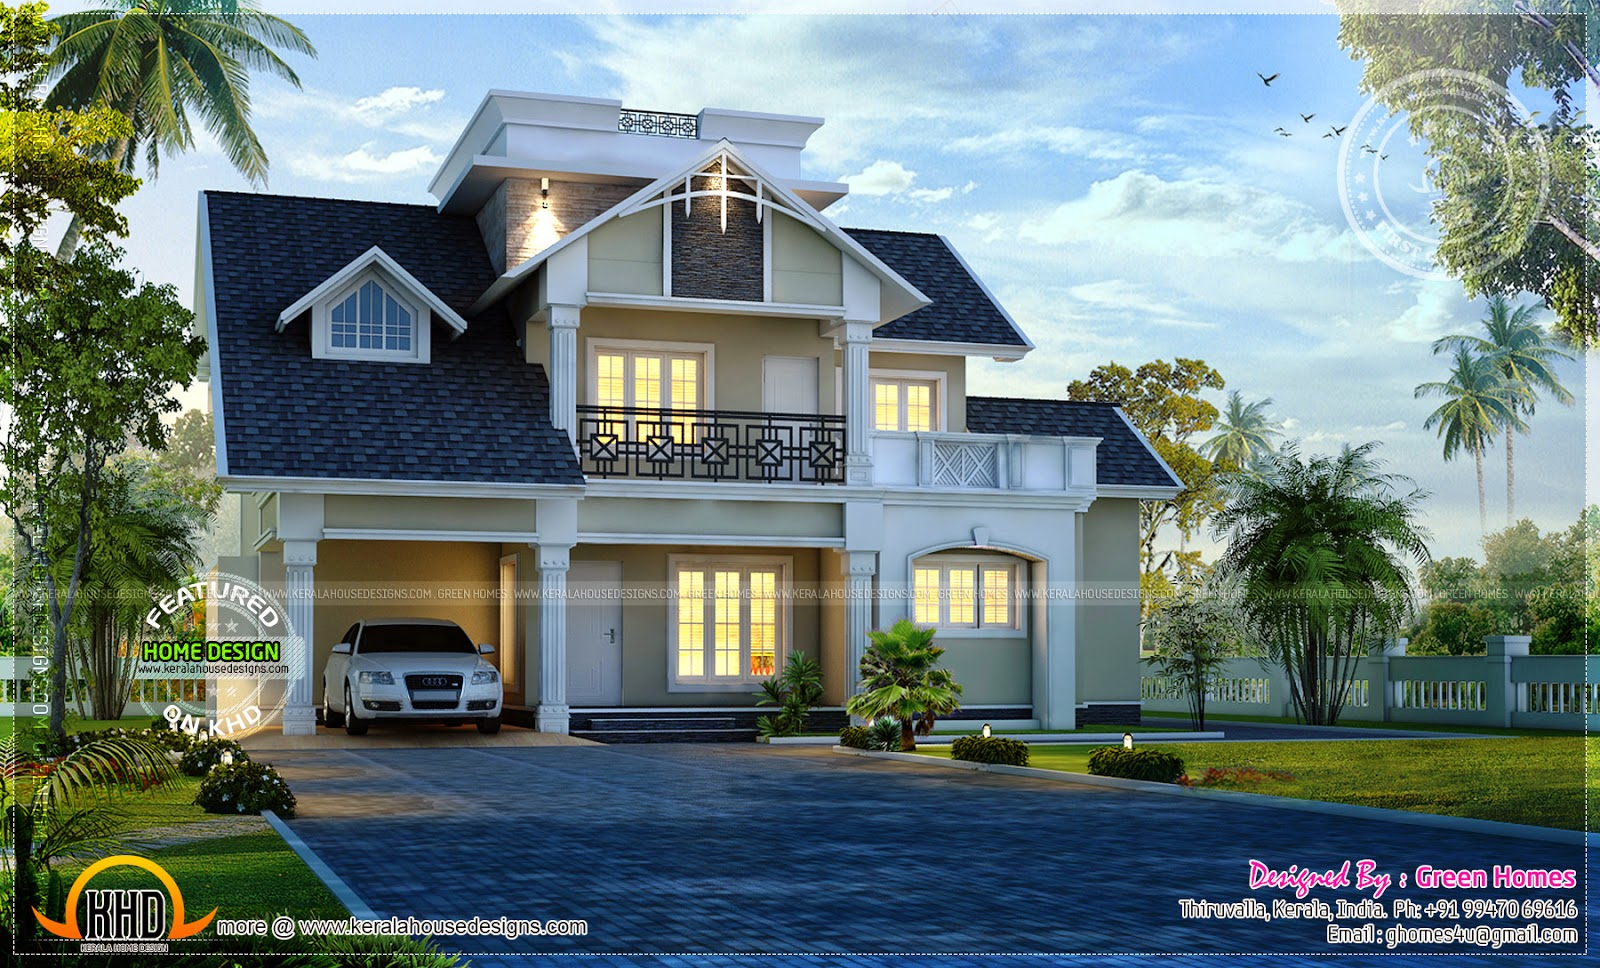 Awesome modern house exterior kerala home design and for Websites to design houses for free